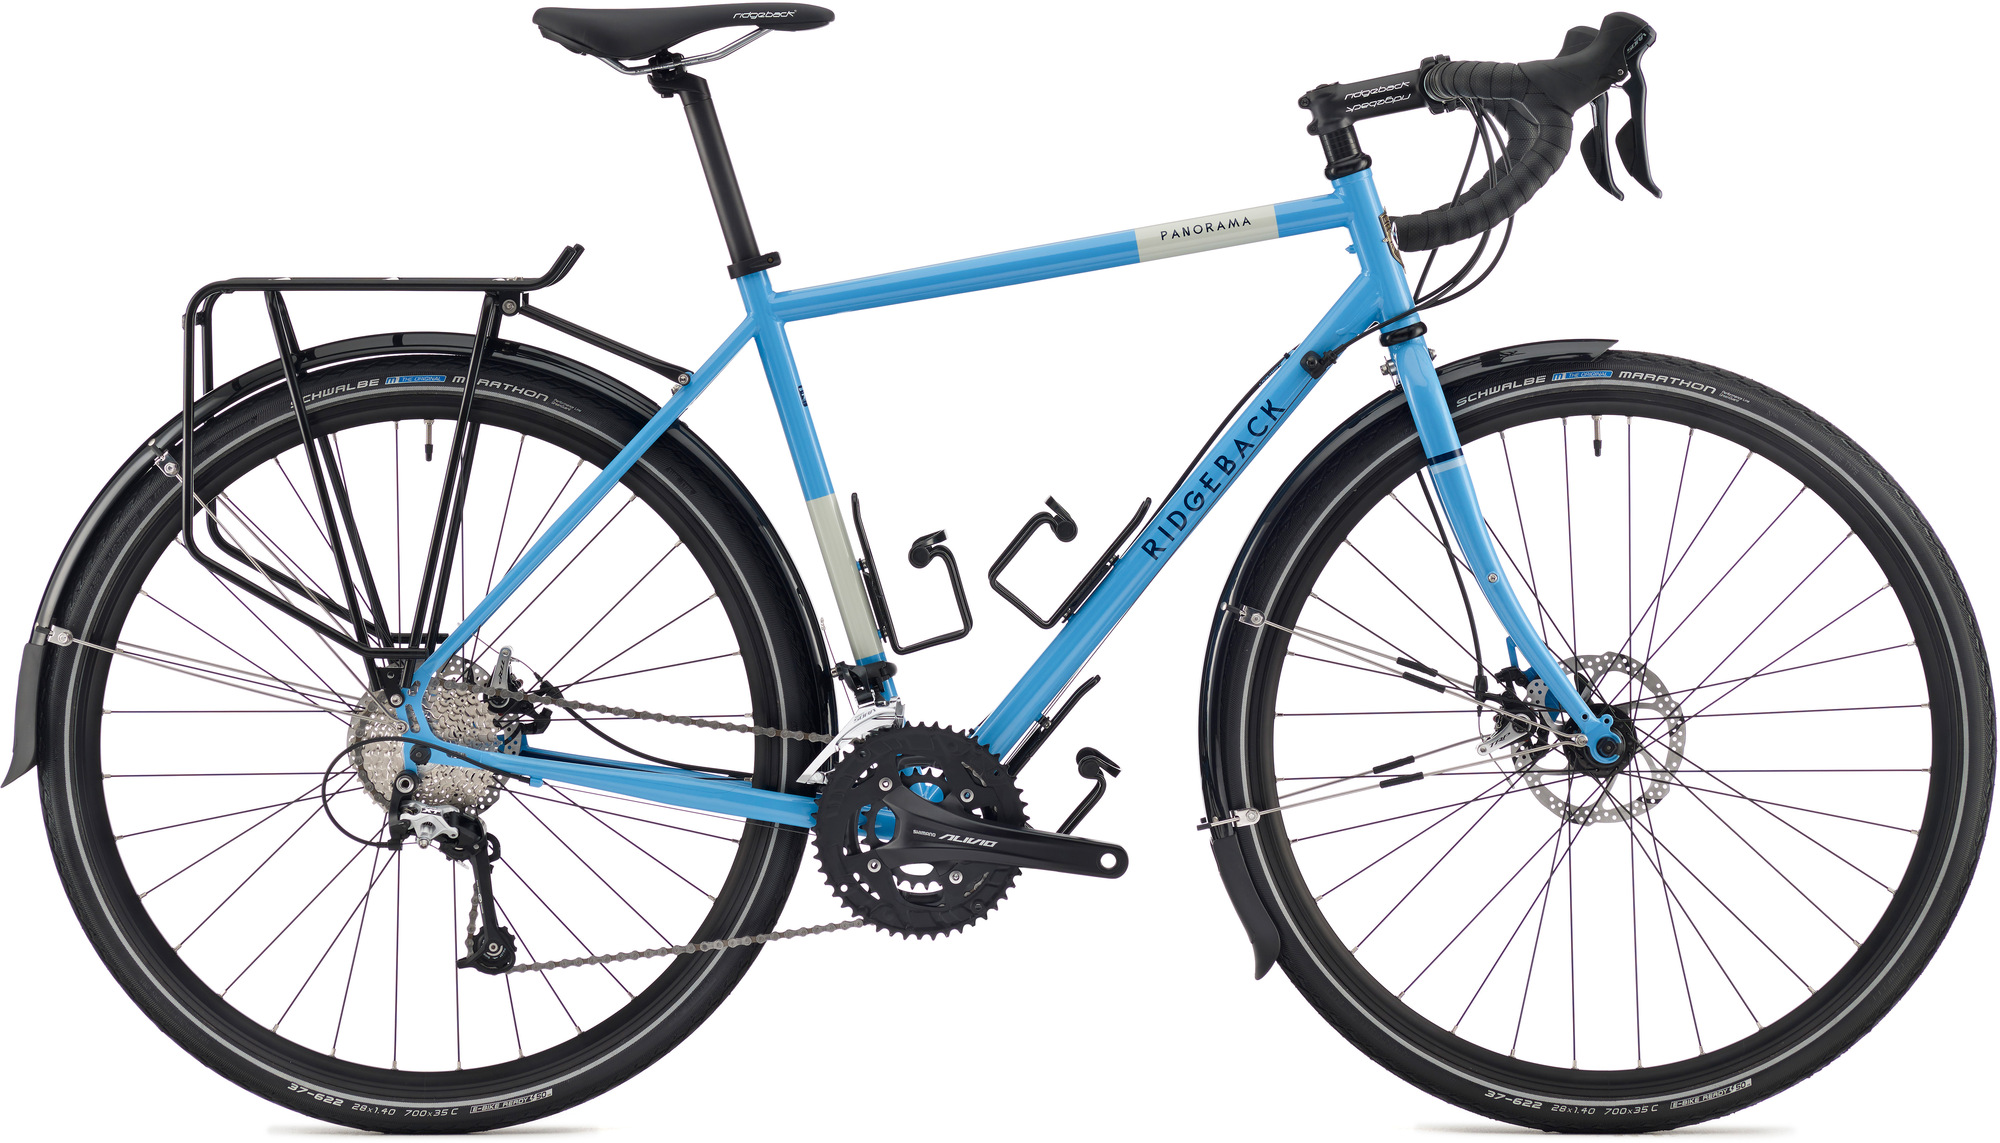 01cbf4645dd Ridgeback Panorama 2018 Touring Bike Blue 1 399 99